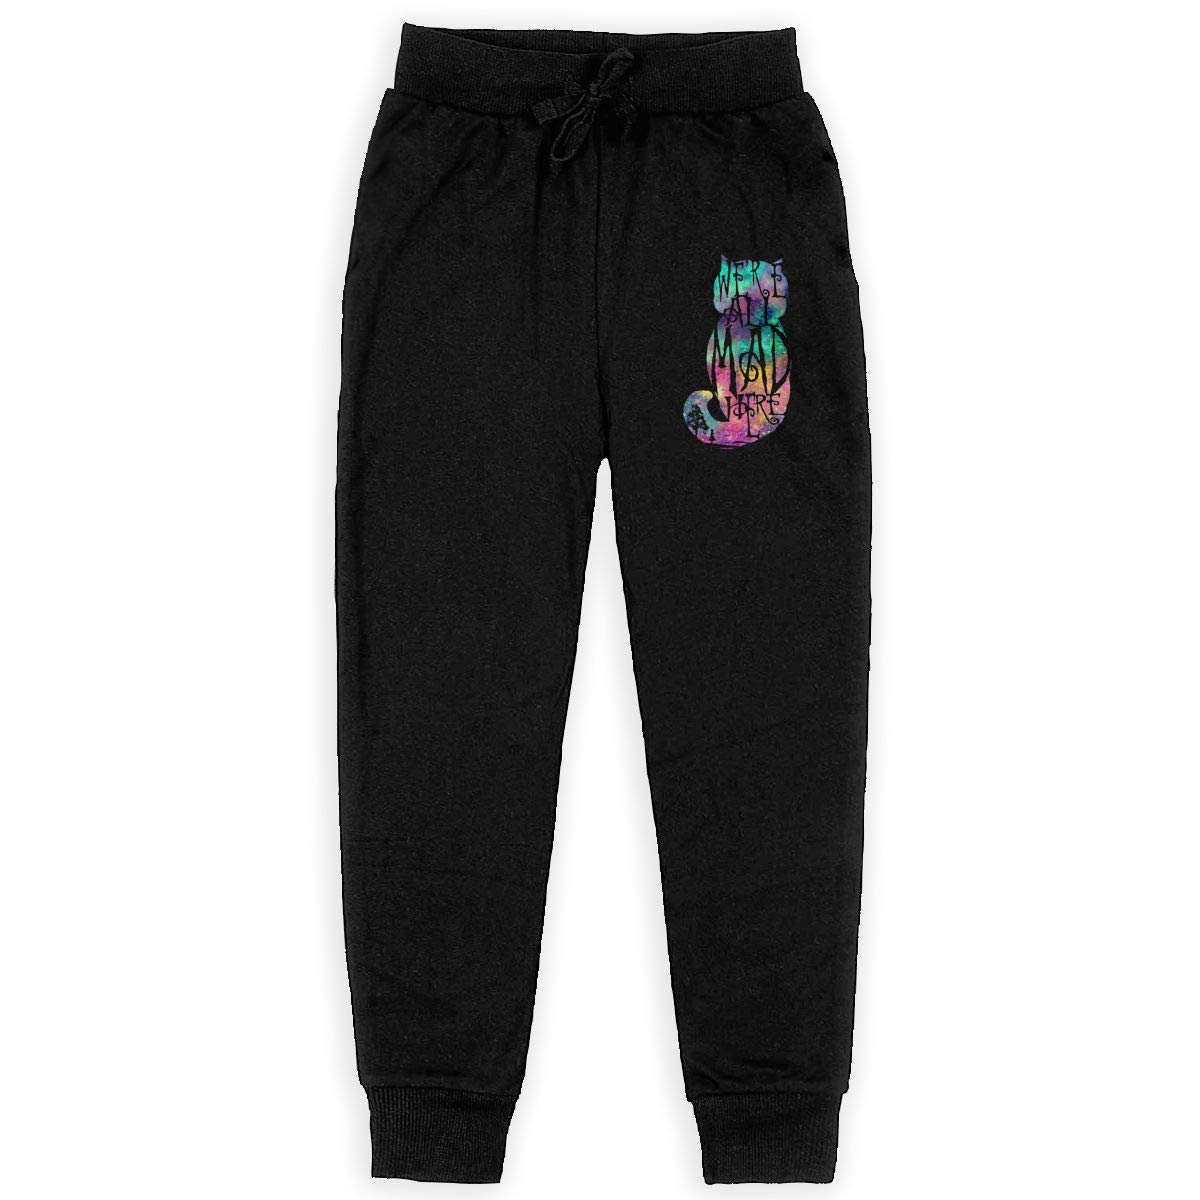 Cat Boys Athletic Smart Fleece Pant Youth Soft and Cozy Sweatpants